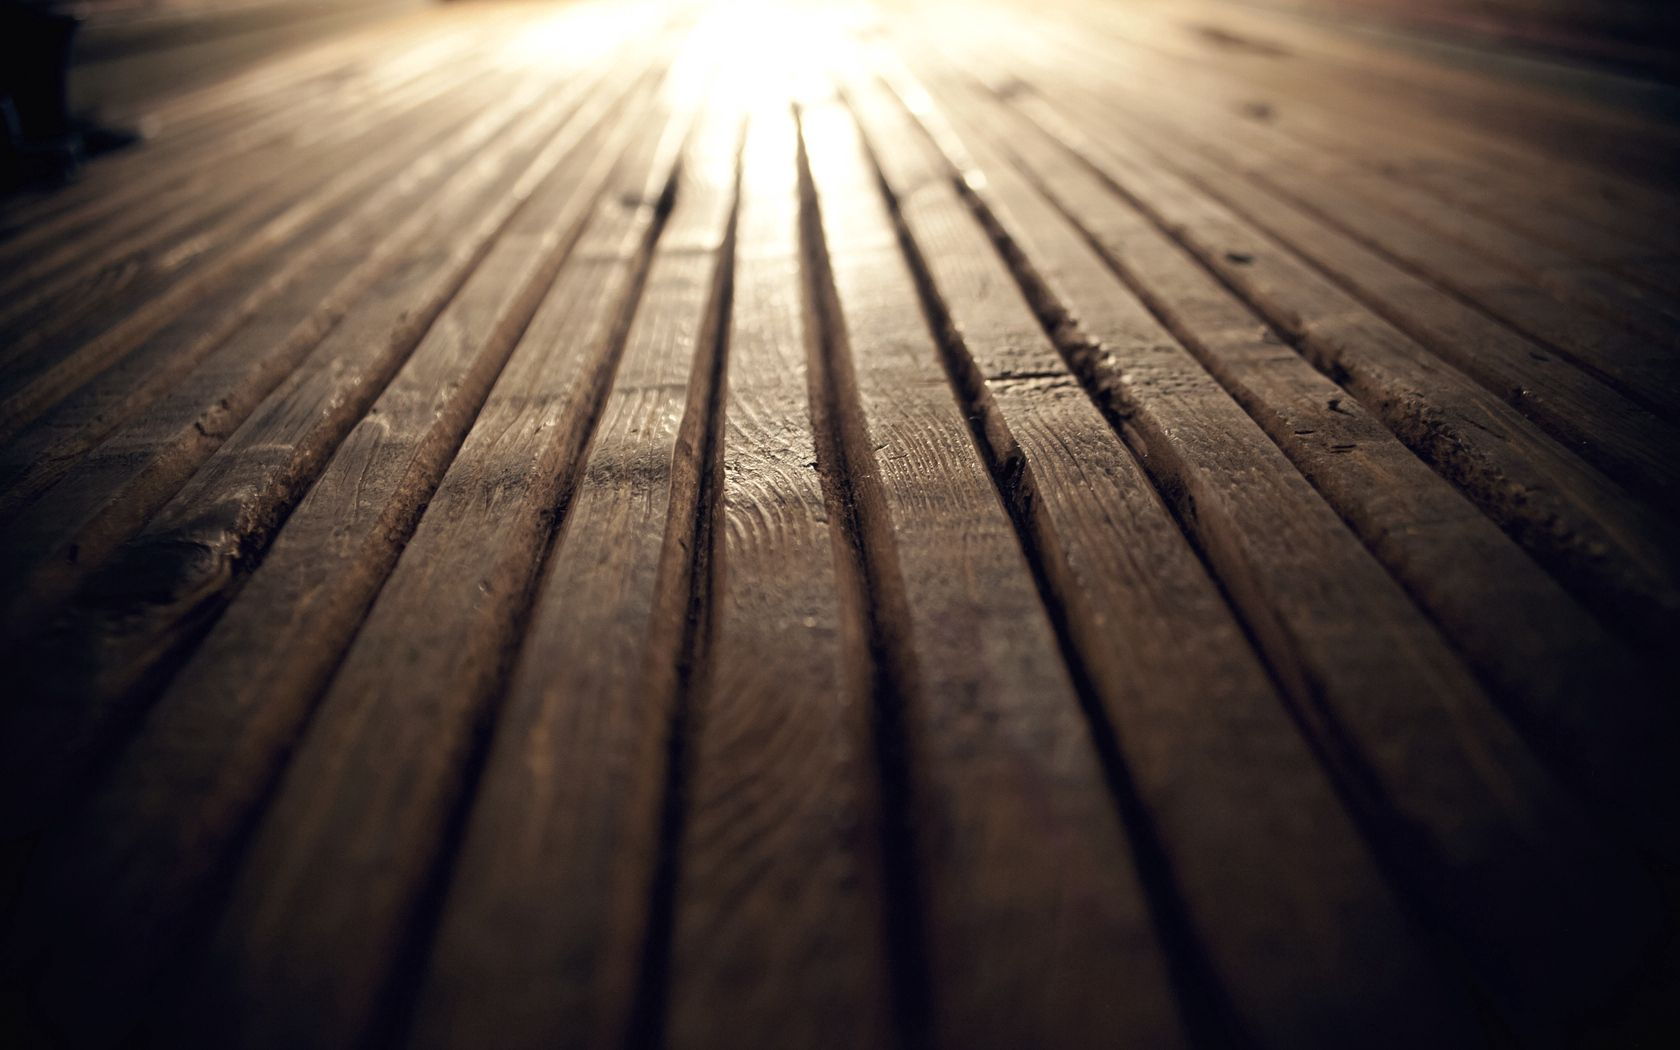 105750 download wallpaper Textures, Texture, Floor, Wood, Wooden, Shadow, Planks, Board screensavers and pictures for free